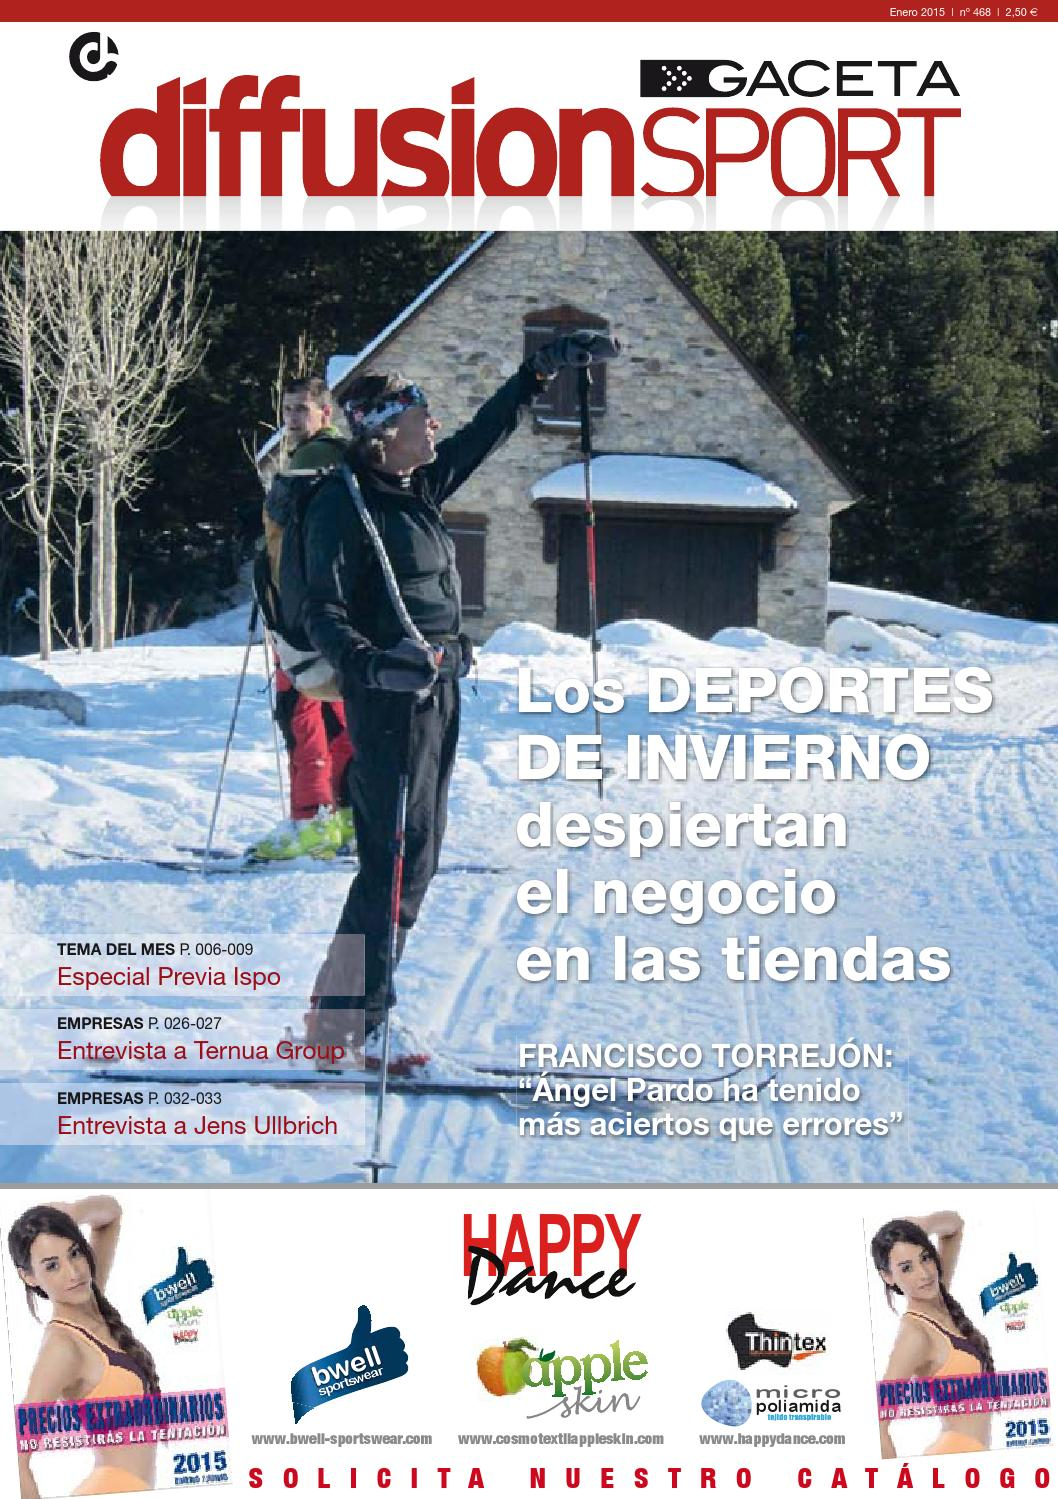 hot sale online 19118 bba2b Diffusion Sport - 468 by Peldaño - issuu